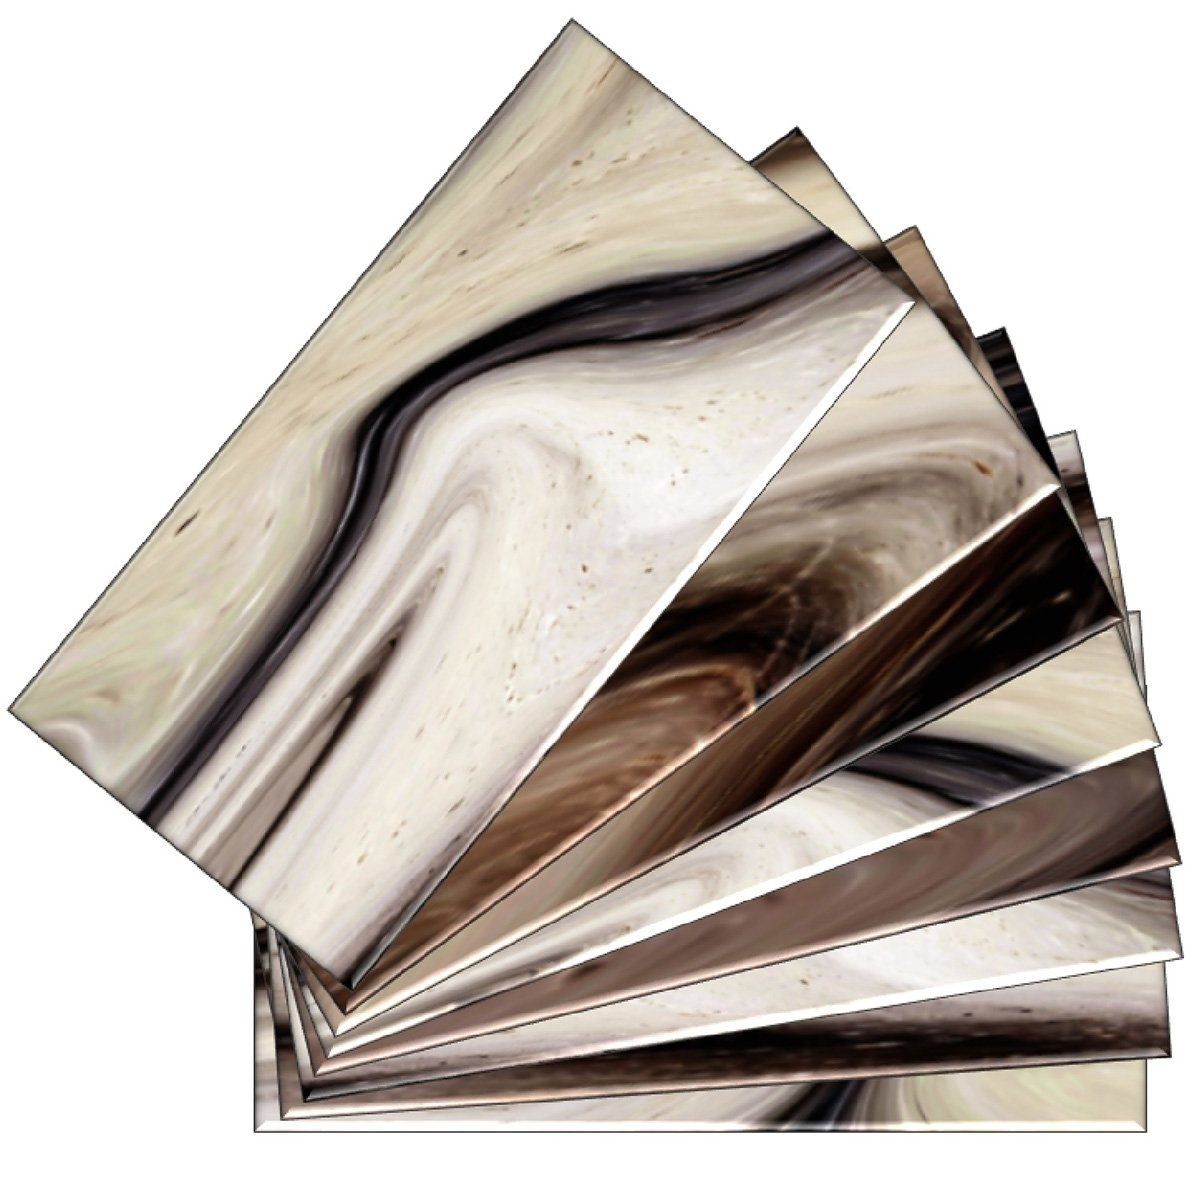 SkinnyTile 04409 Peel and Stick Earth Tone Watercolors 6 in. x 3 in. Glass Wall Tile (48-Pack), 6'' x 3'' by SkinnyTile